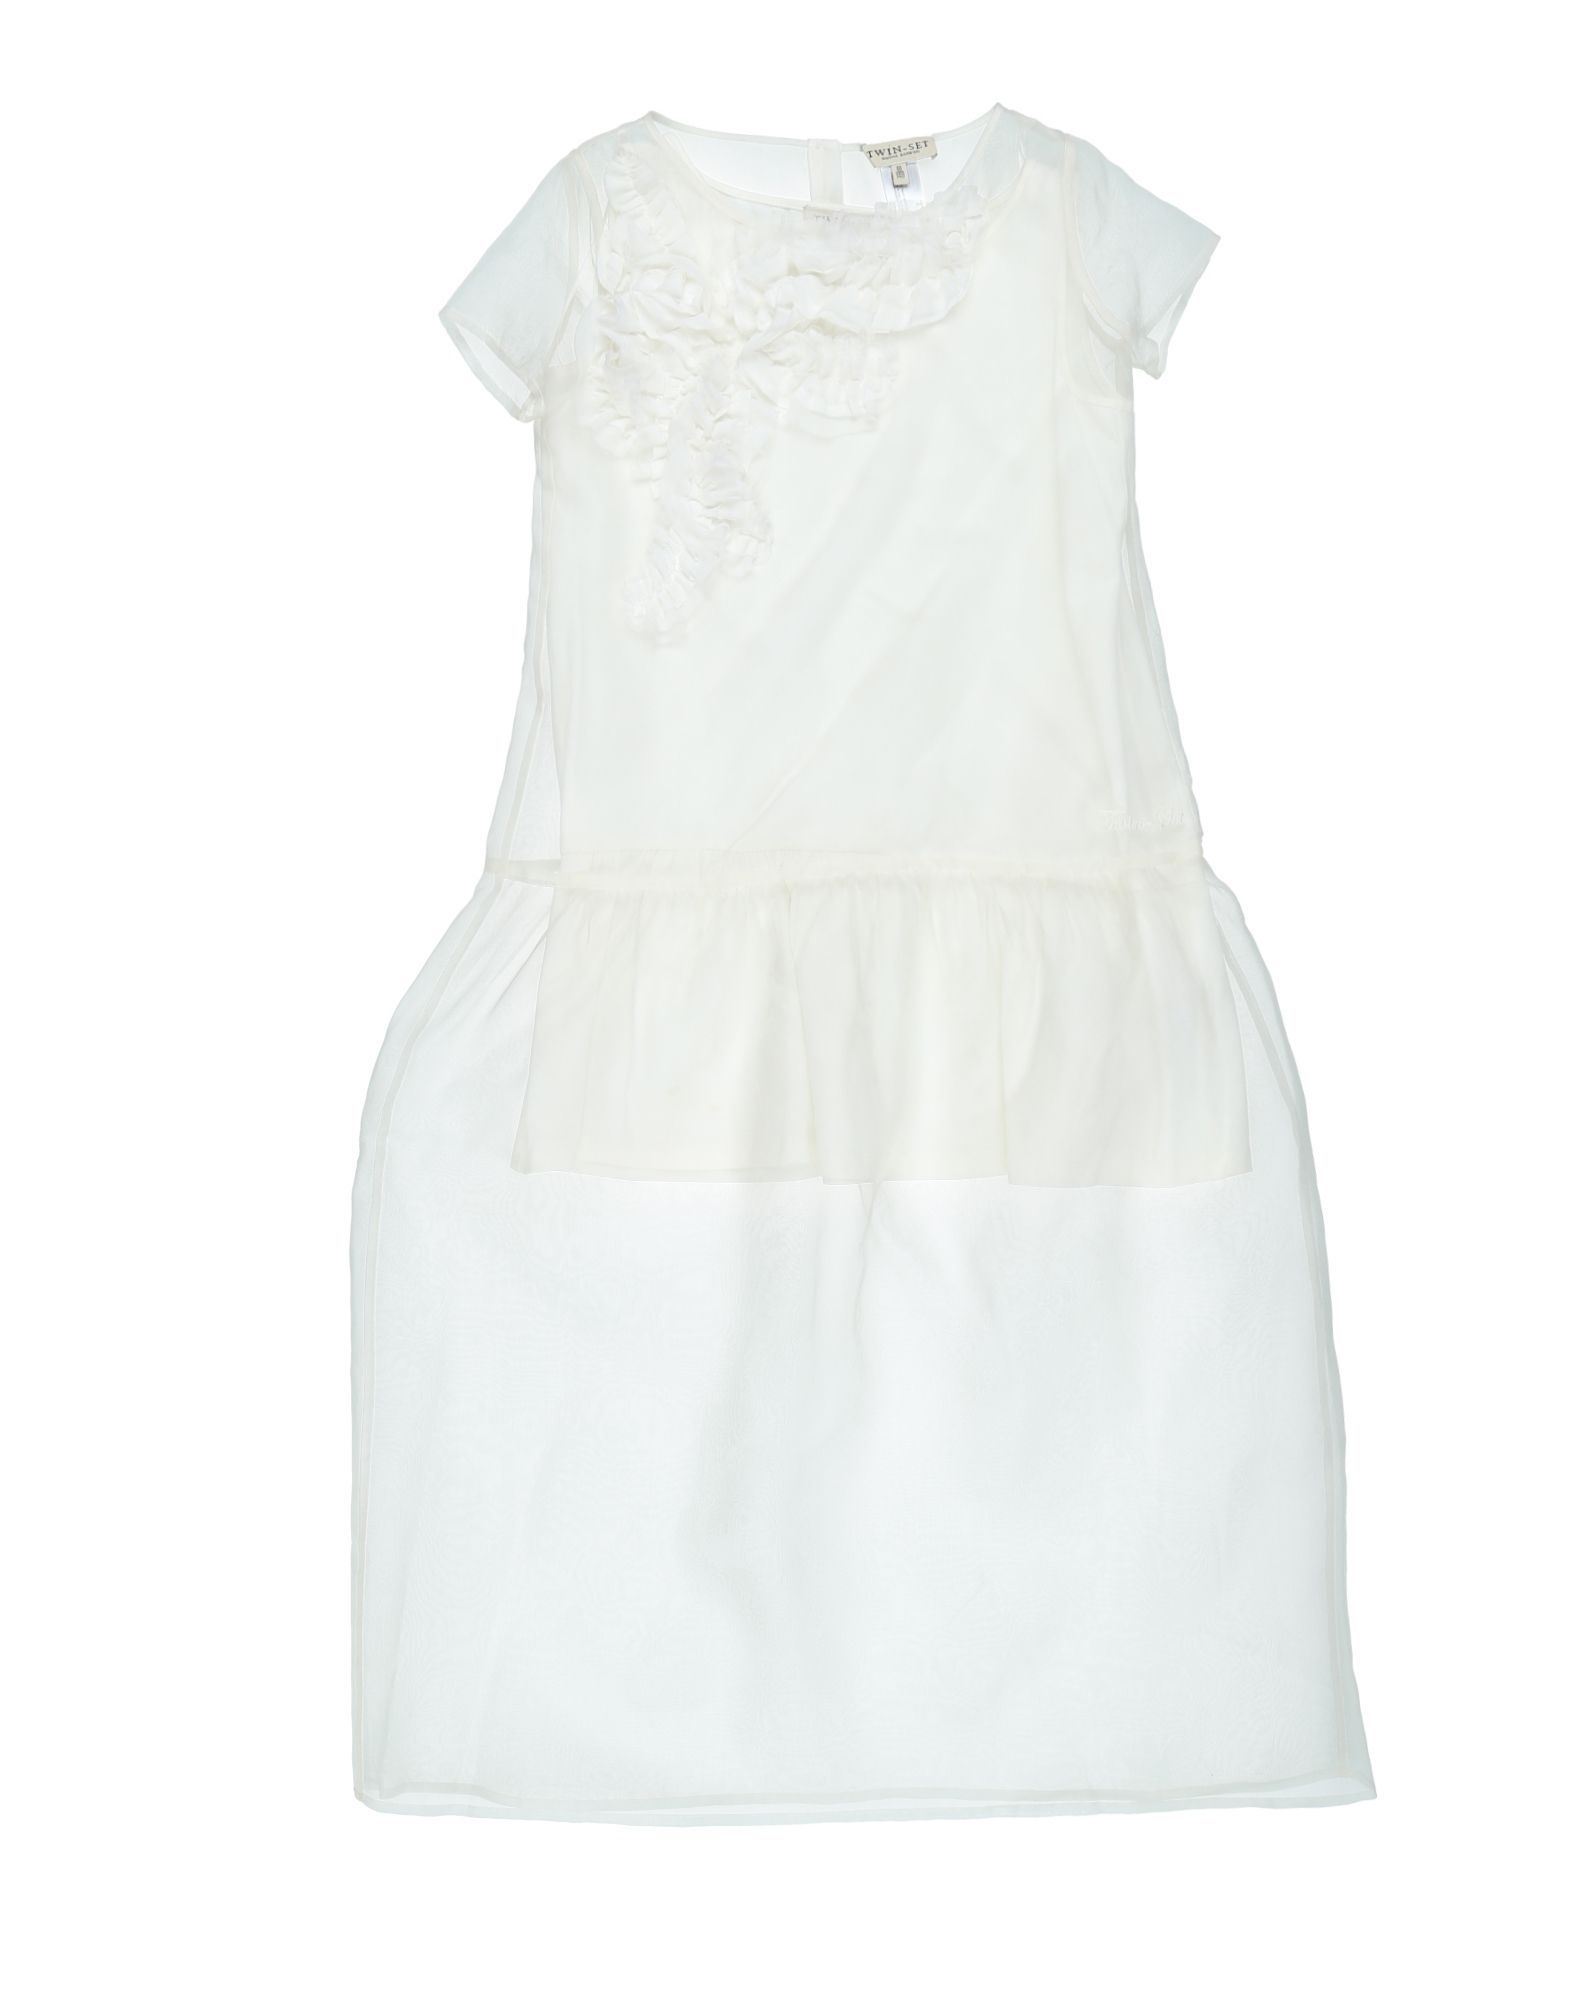 DRESSES Twinset White Girl Cotton